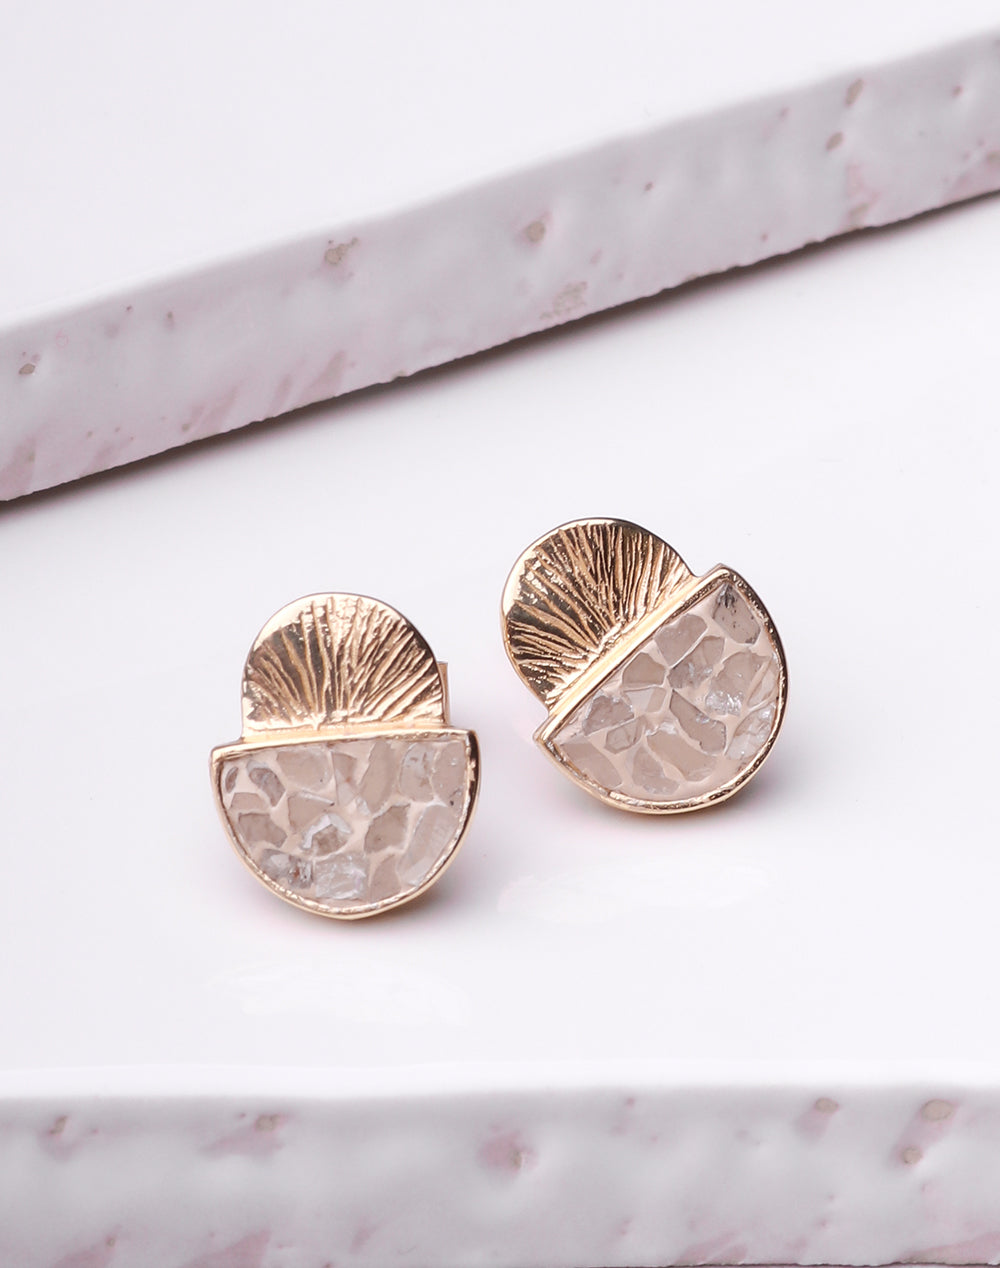 Deco Diamond Laine Earings - 18K Gold Plated